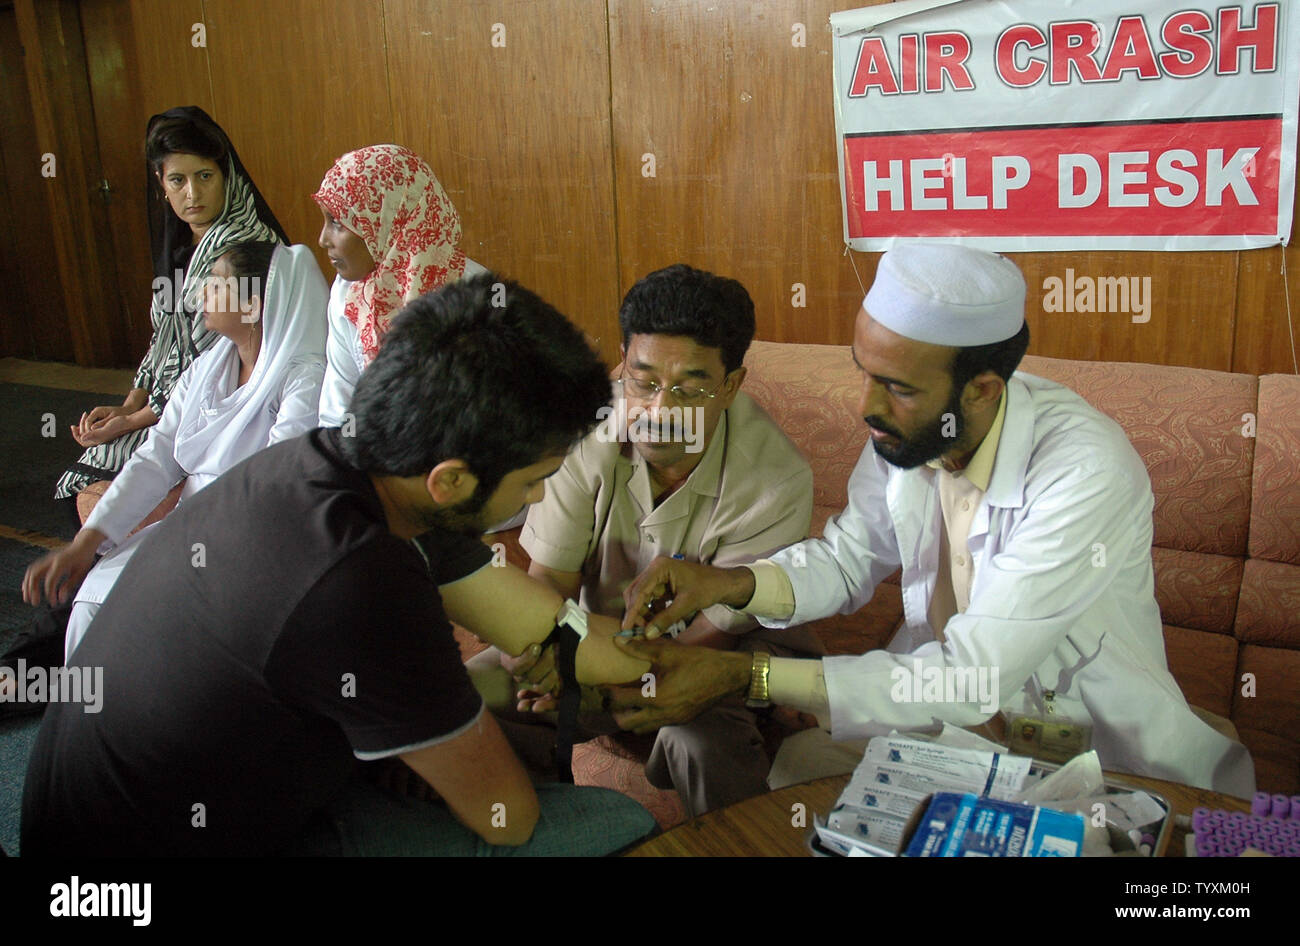 A  man gives a blood sample for his DNA to be used in identifying remains of relatives killed in a plane crash at a help center in Islamabad on July 29, 2010.  Pakistan observed a day of mourning for the 152 people killed in its worst aviation disaster July 28, as a monsoon deluge delayed the search for the aircraft's black box in hilly woodland.  UPI/Sajjad Ali Qureshi - Stock Image